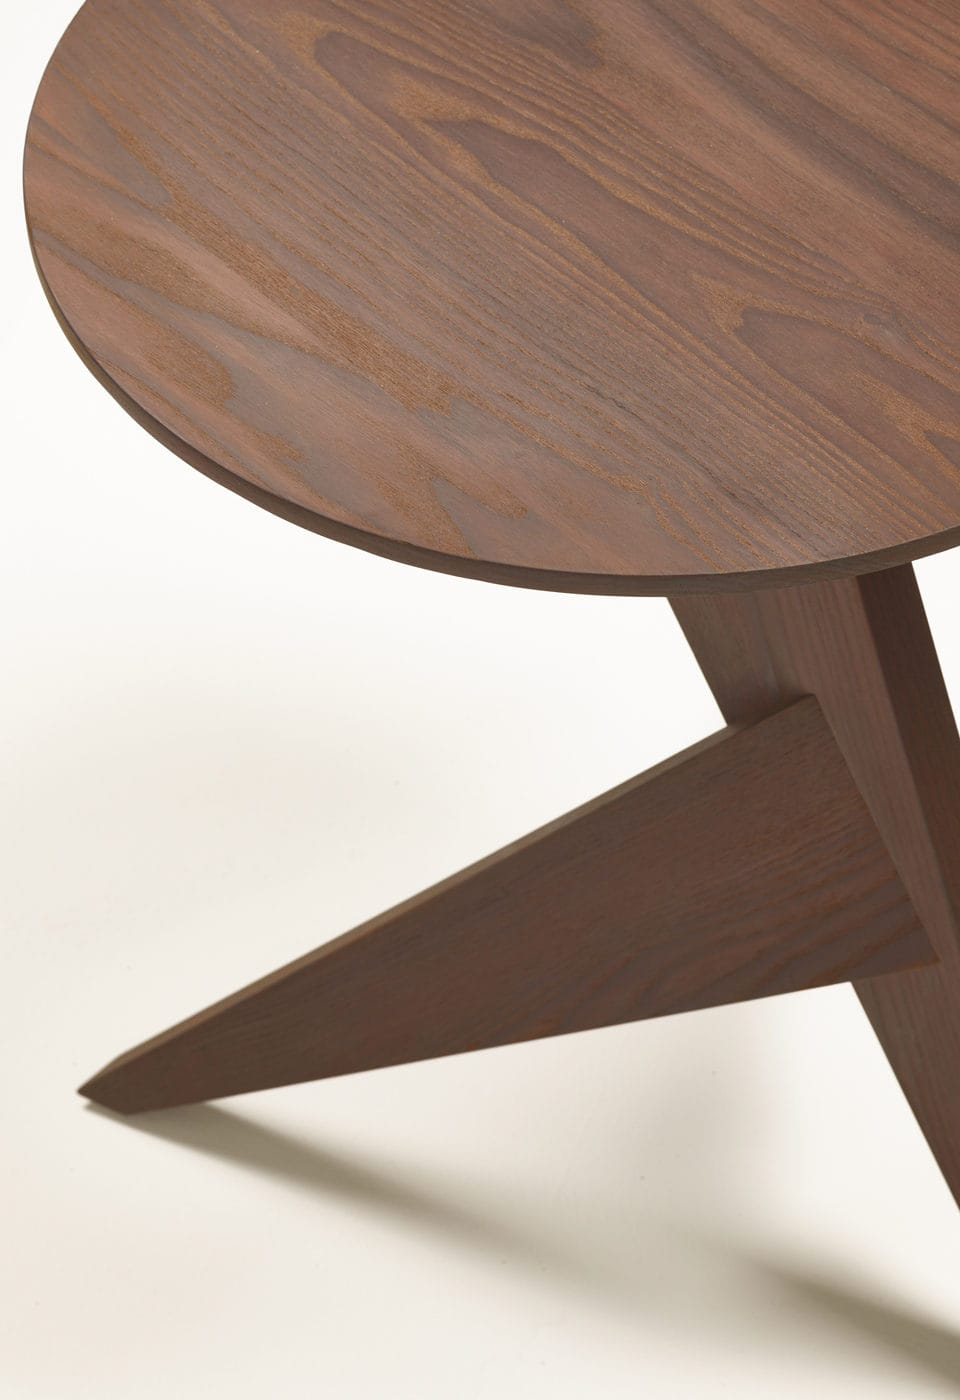 Mc4 Medici Table By Constantin Grcic For Mattiazzi